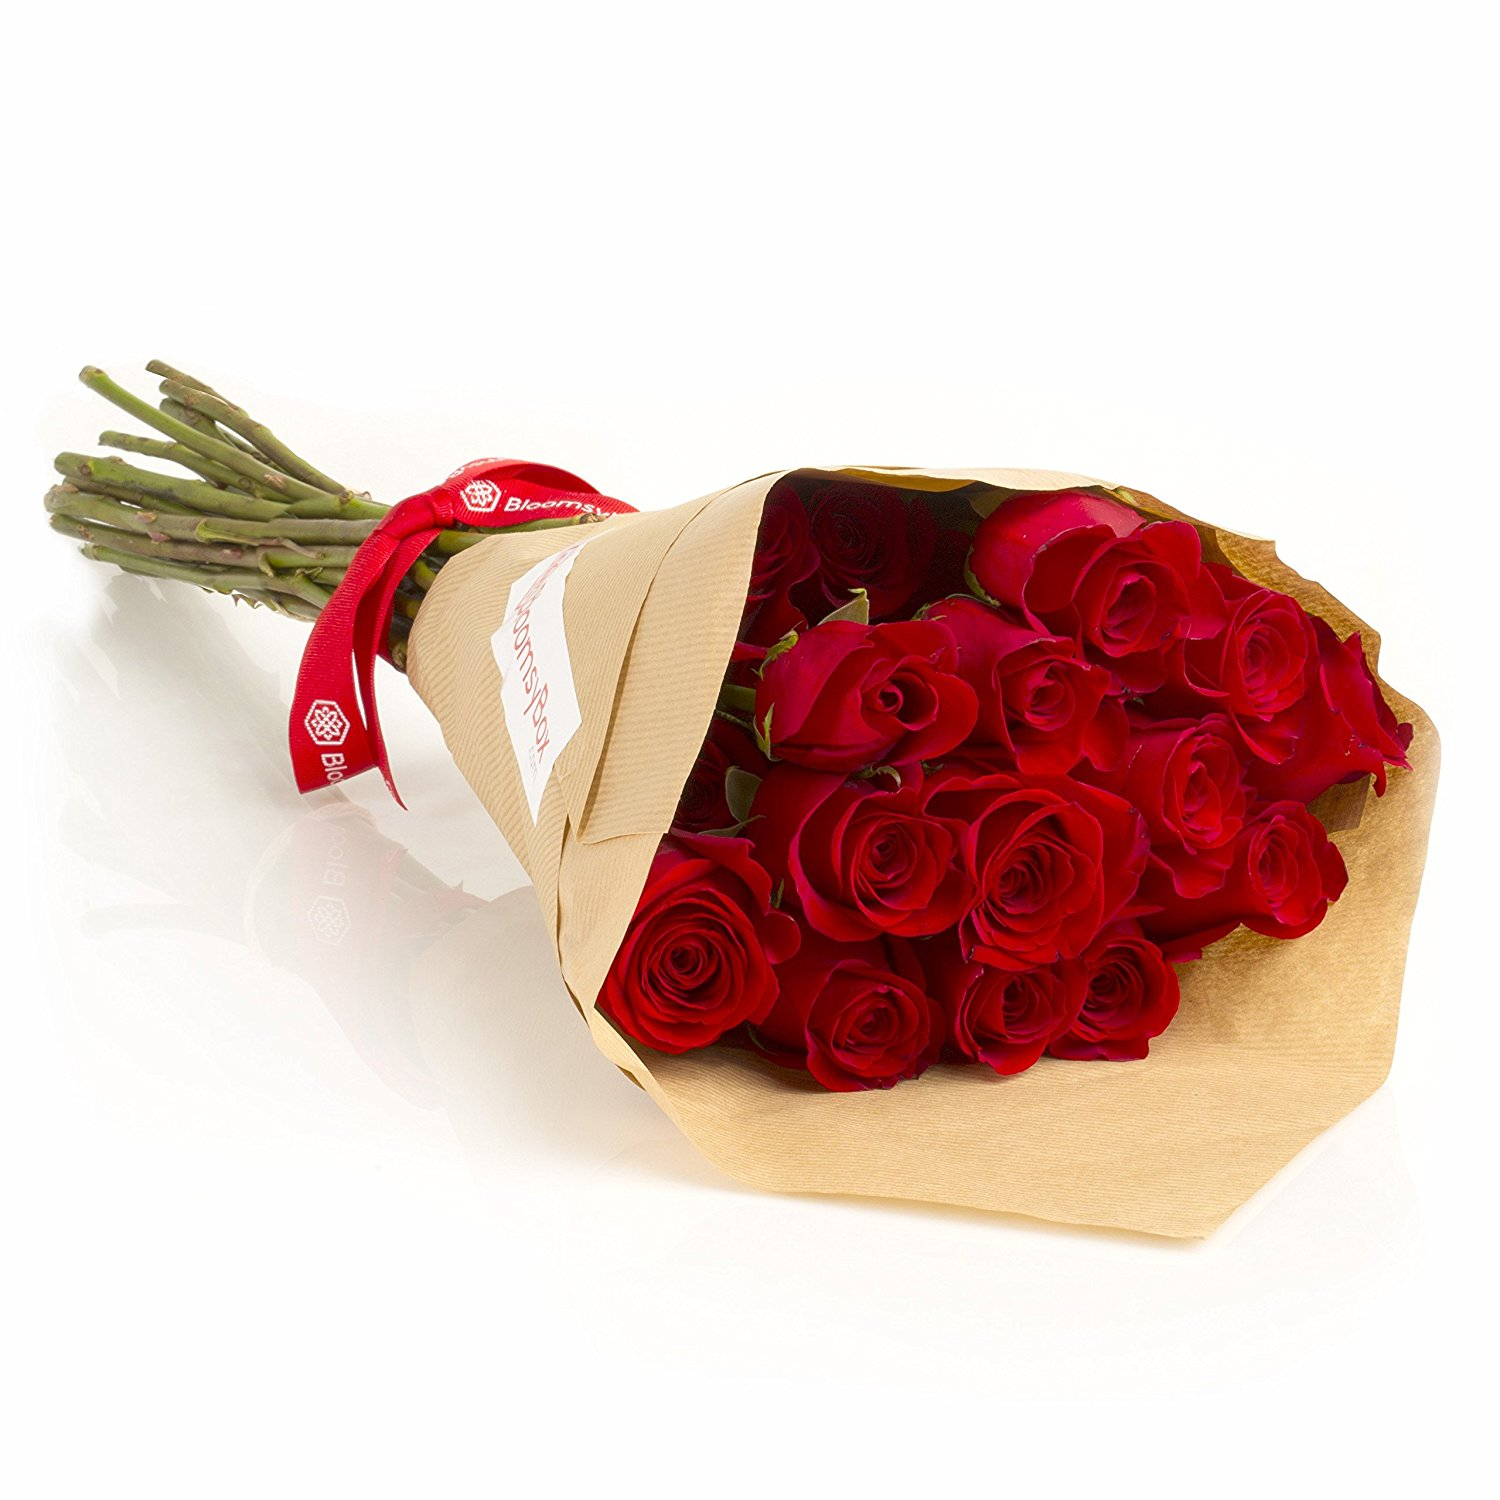 24 long stem red roses hand tied bouquet wf shopping 24 long stem red roses hand tied bouquet izmirmasajfo